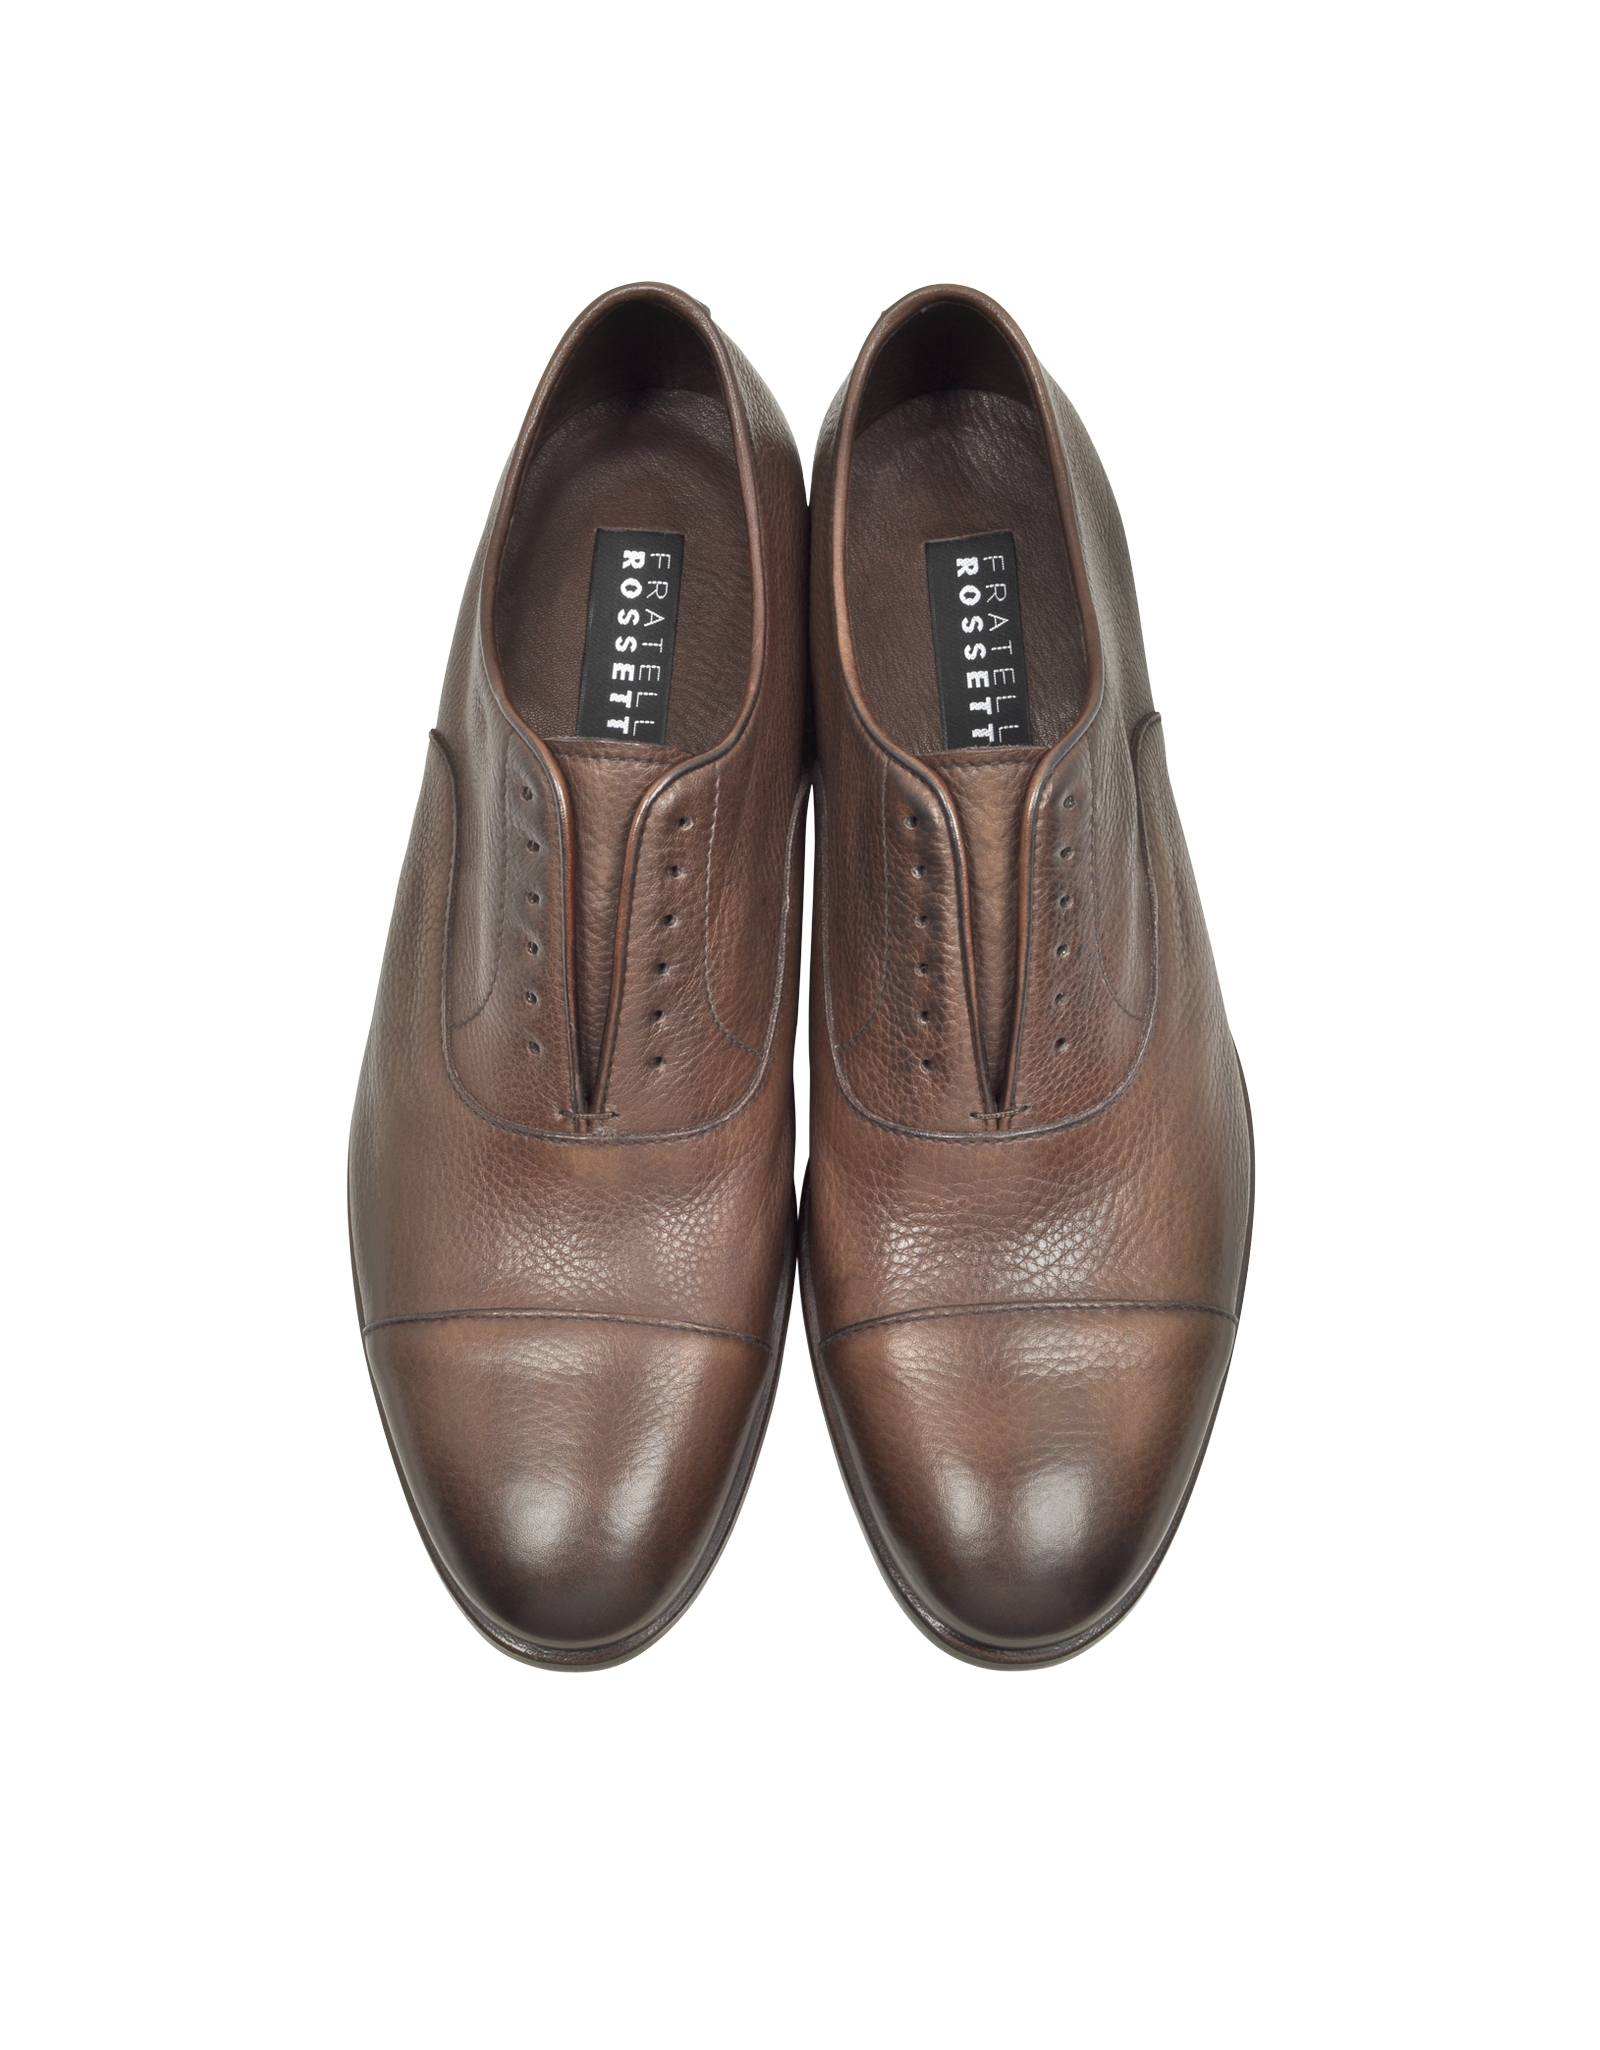 Fratelli Rossetti Metallic Leather Oxfords buy online outlet sale sast jIB0uYm4y